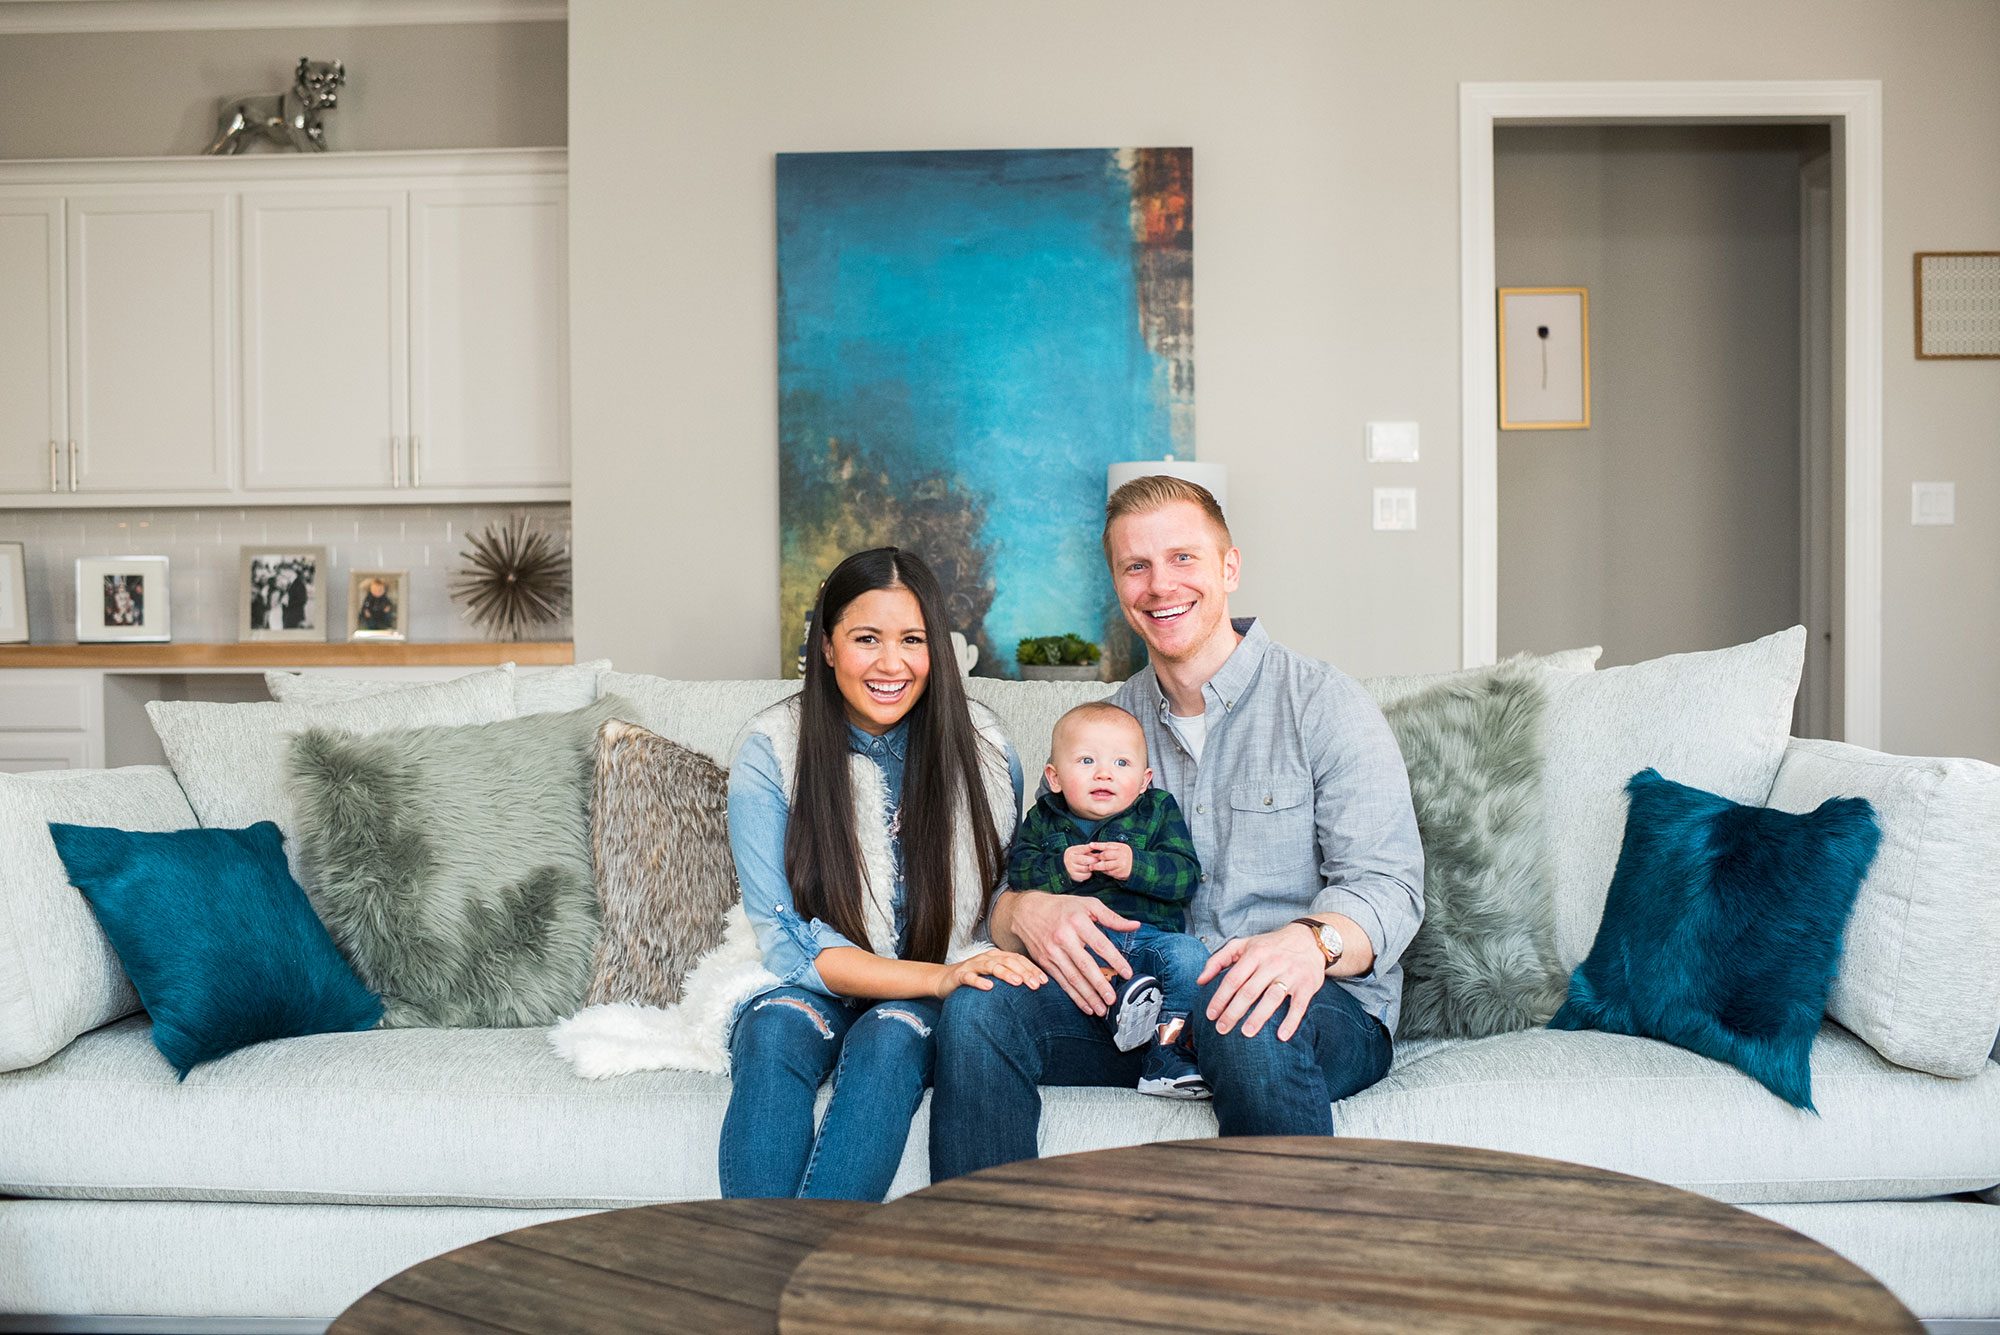 Sean and Catherine Lowe's Family Home